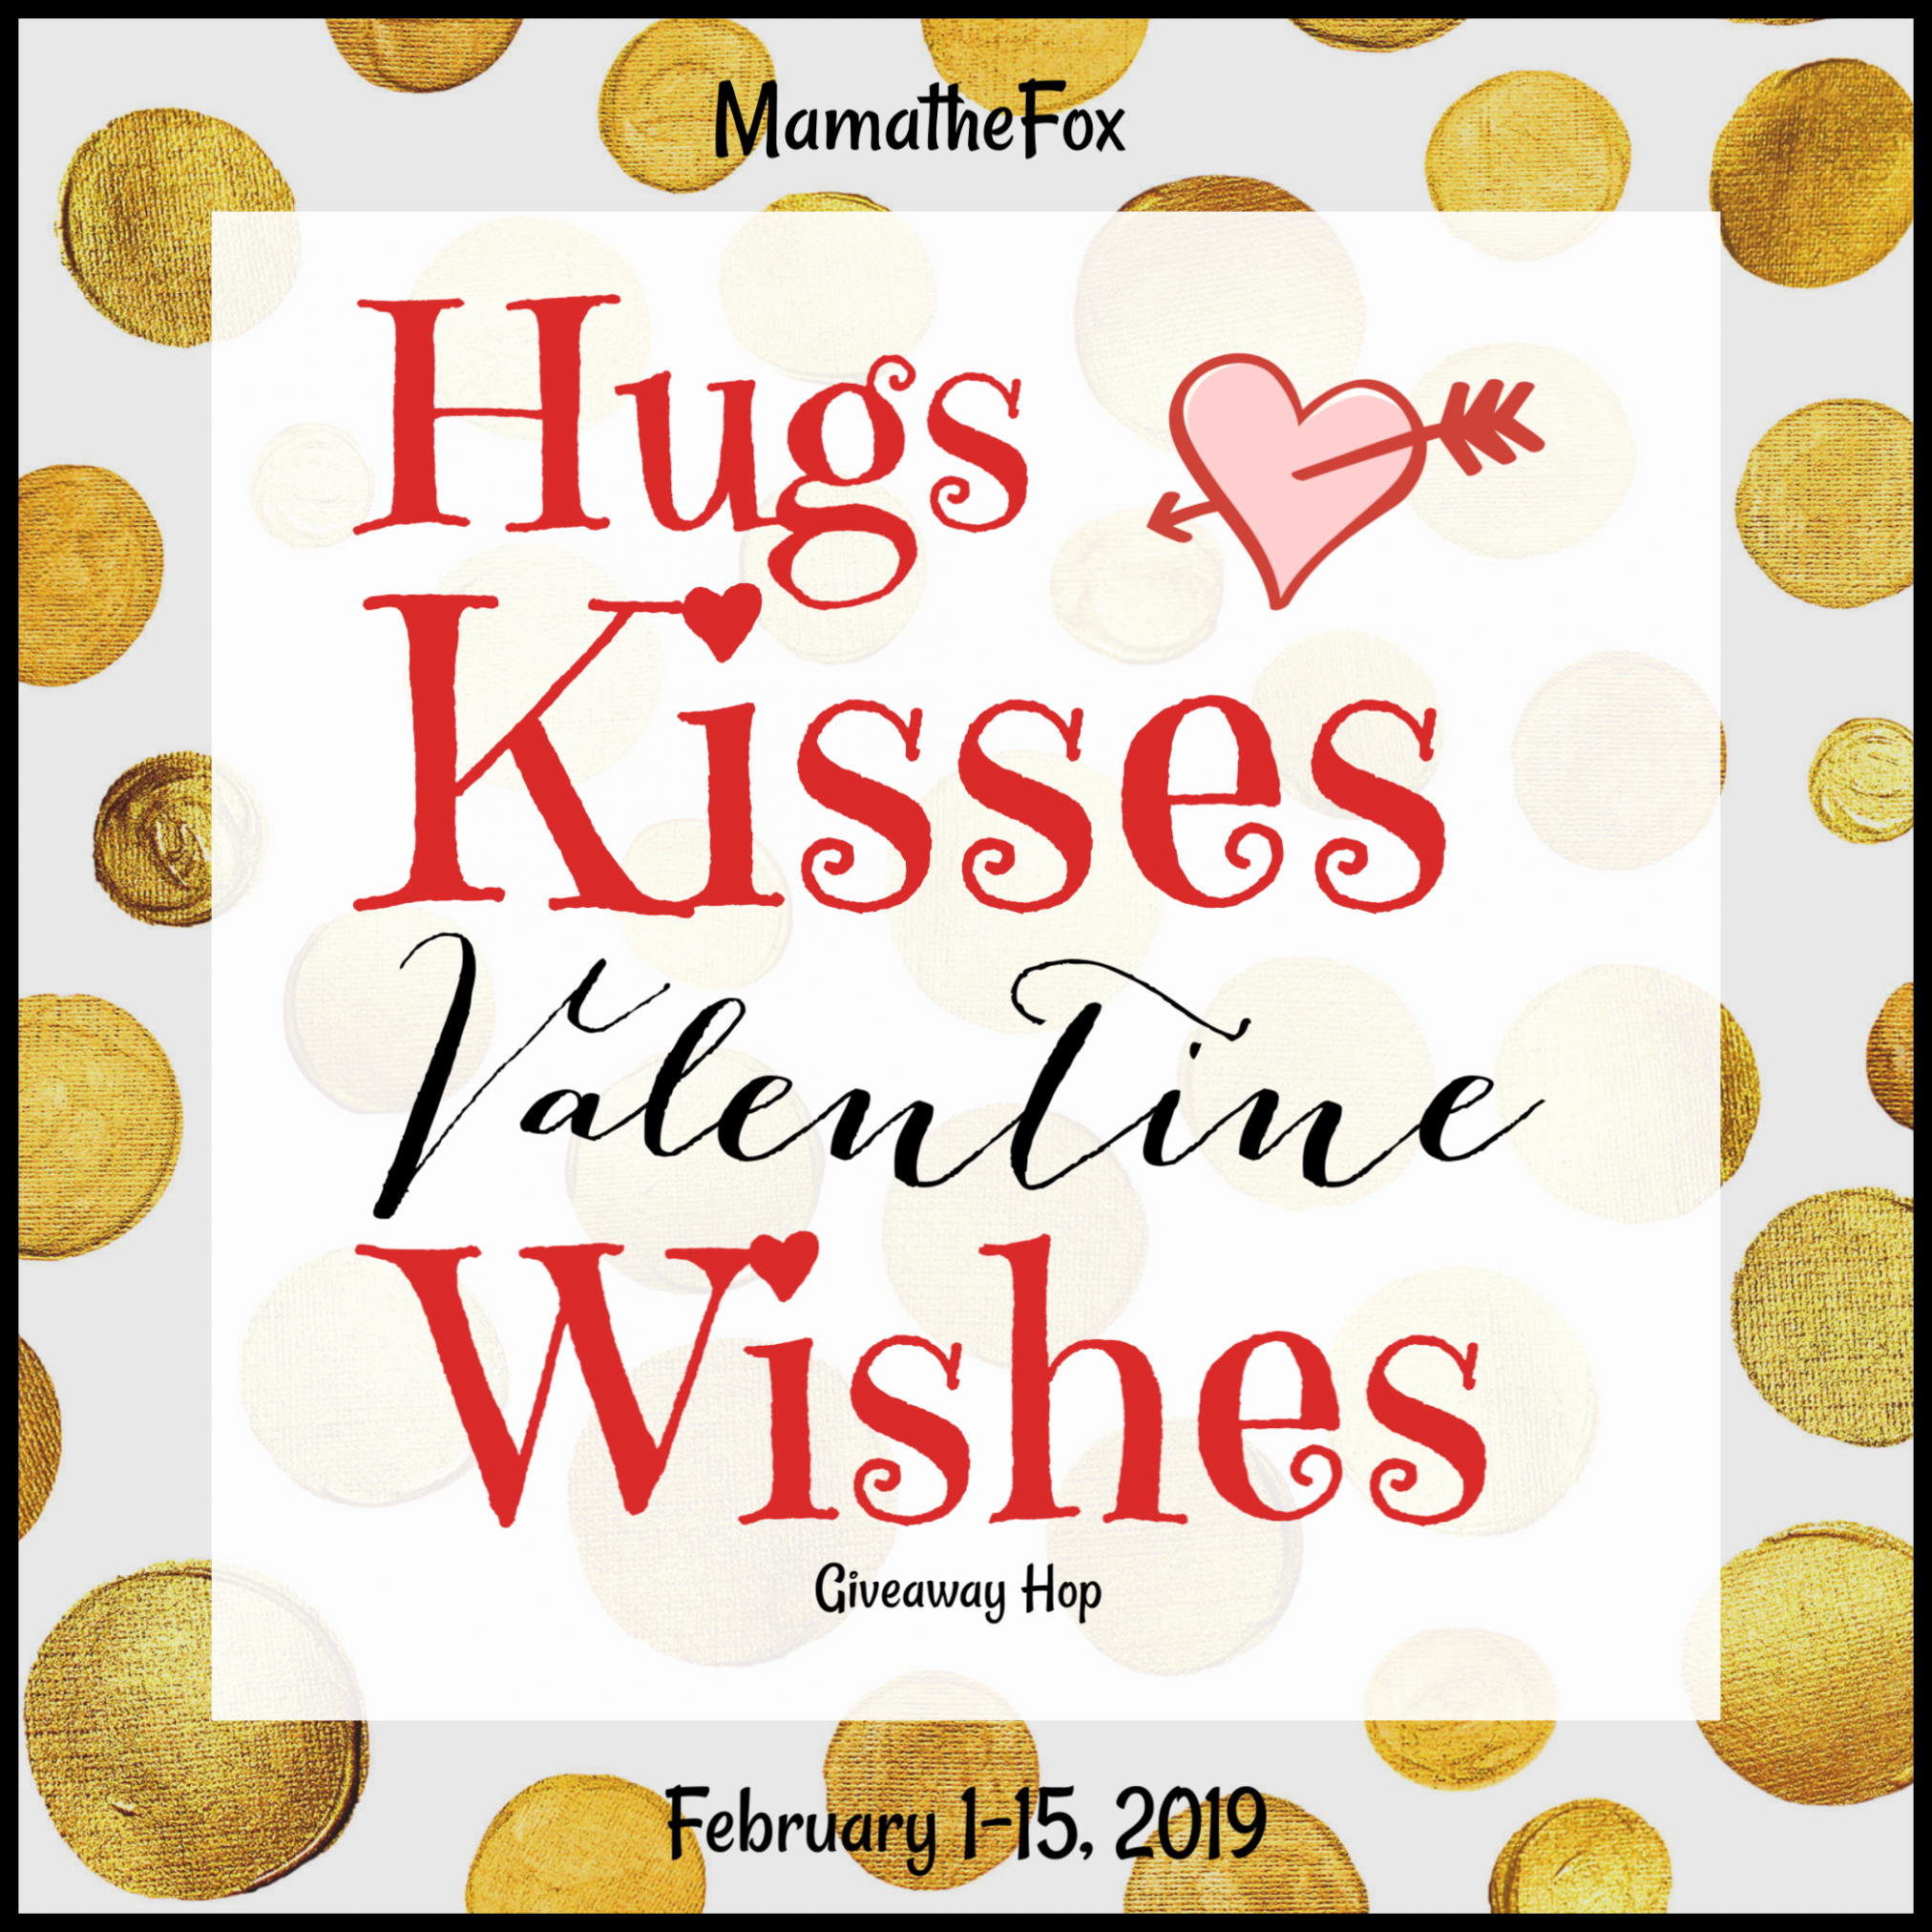 Hugs Kisses and Valentine Wishes Giveaway Hop